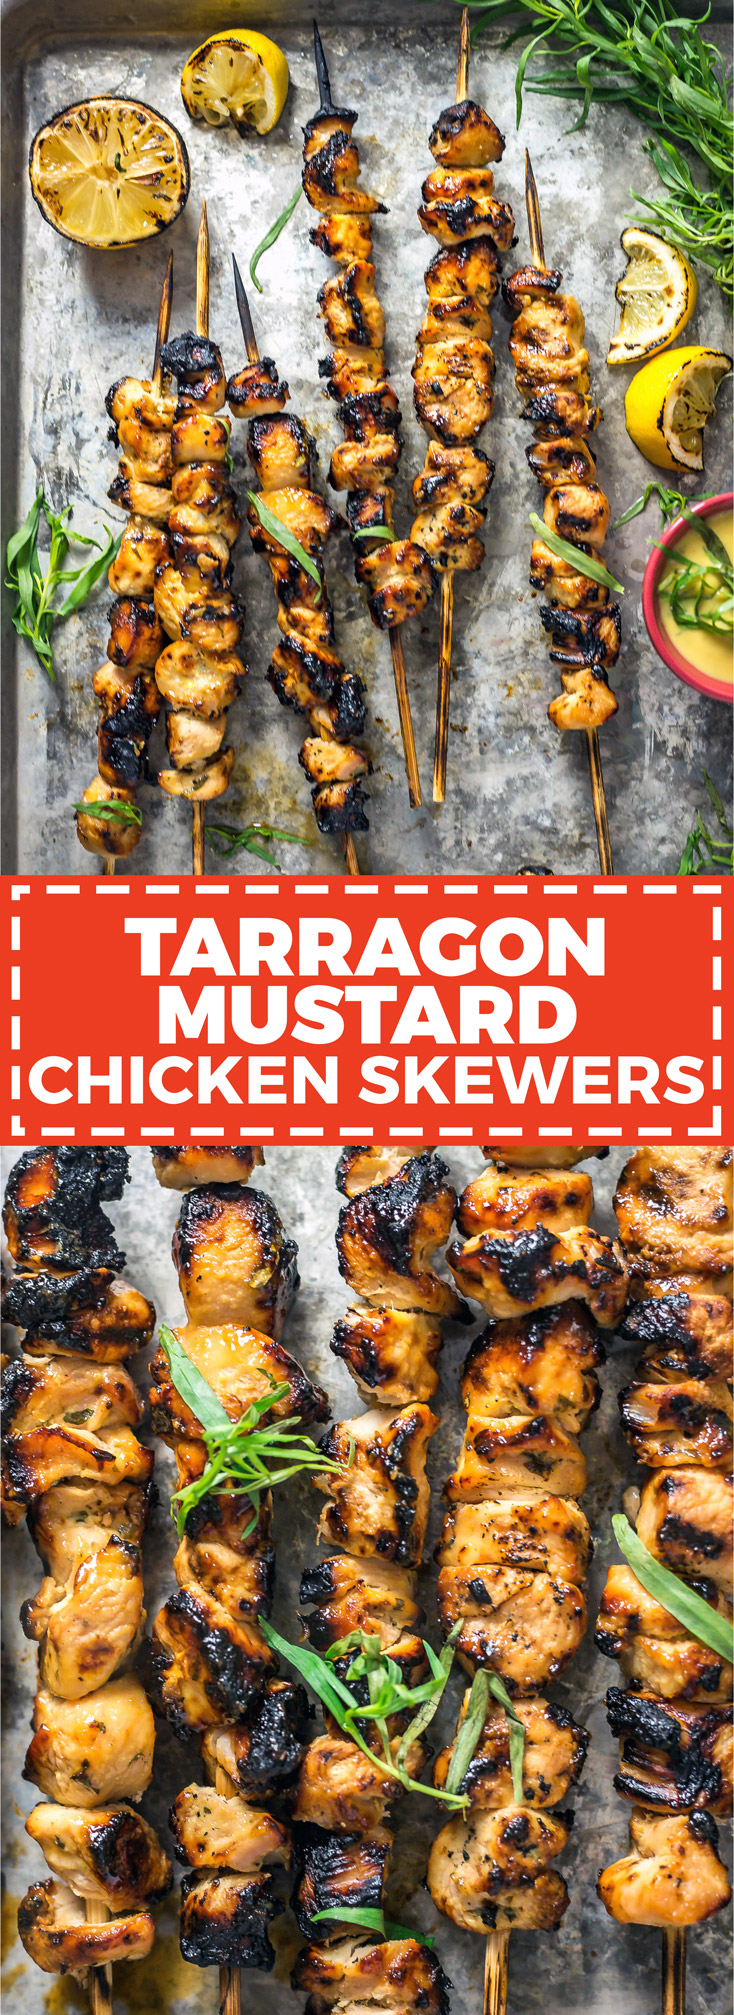 Tarragon Mustard Chicken Skewers. Dijon mustard, garlic, lemon juice, olive oil, tarragon and honey are all you need to make an incredibly flavorful chicken marinade. | hostthetoast.com